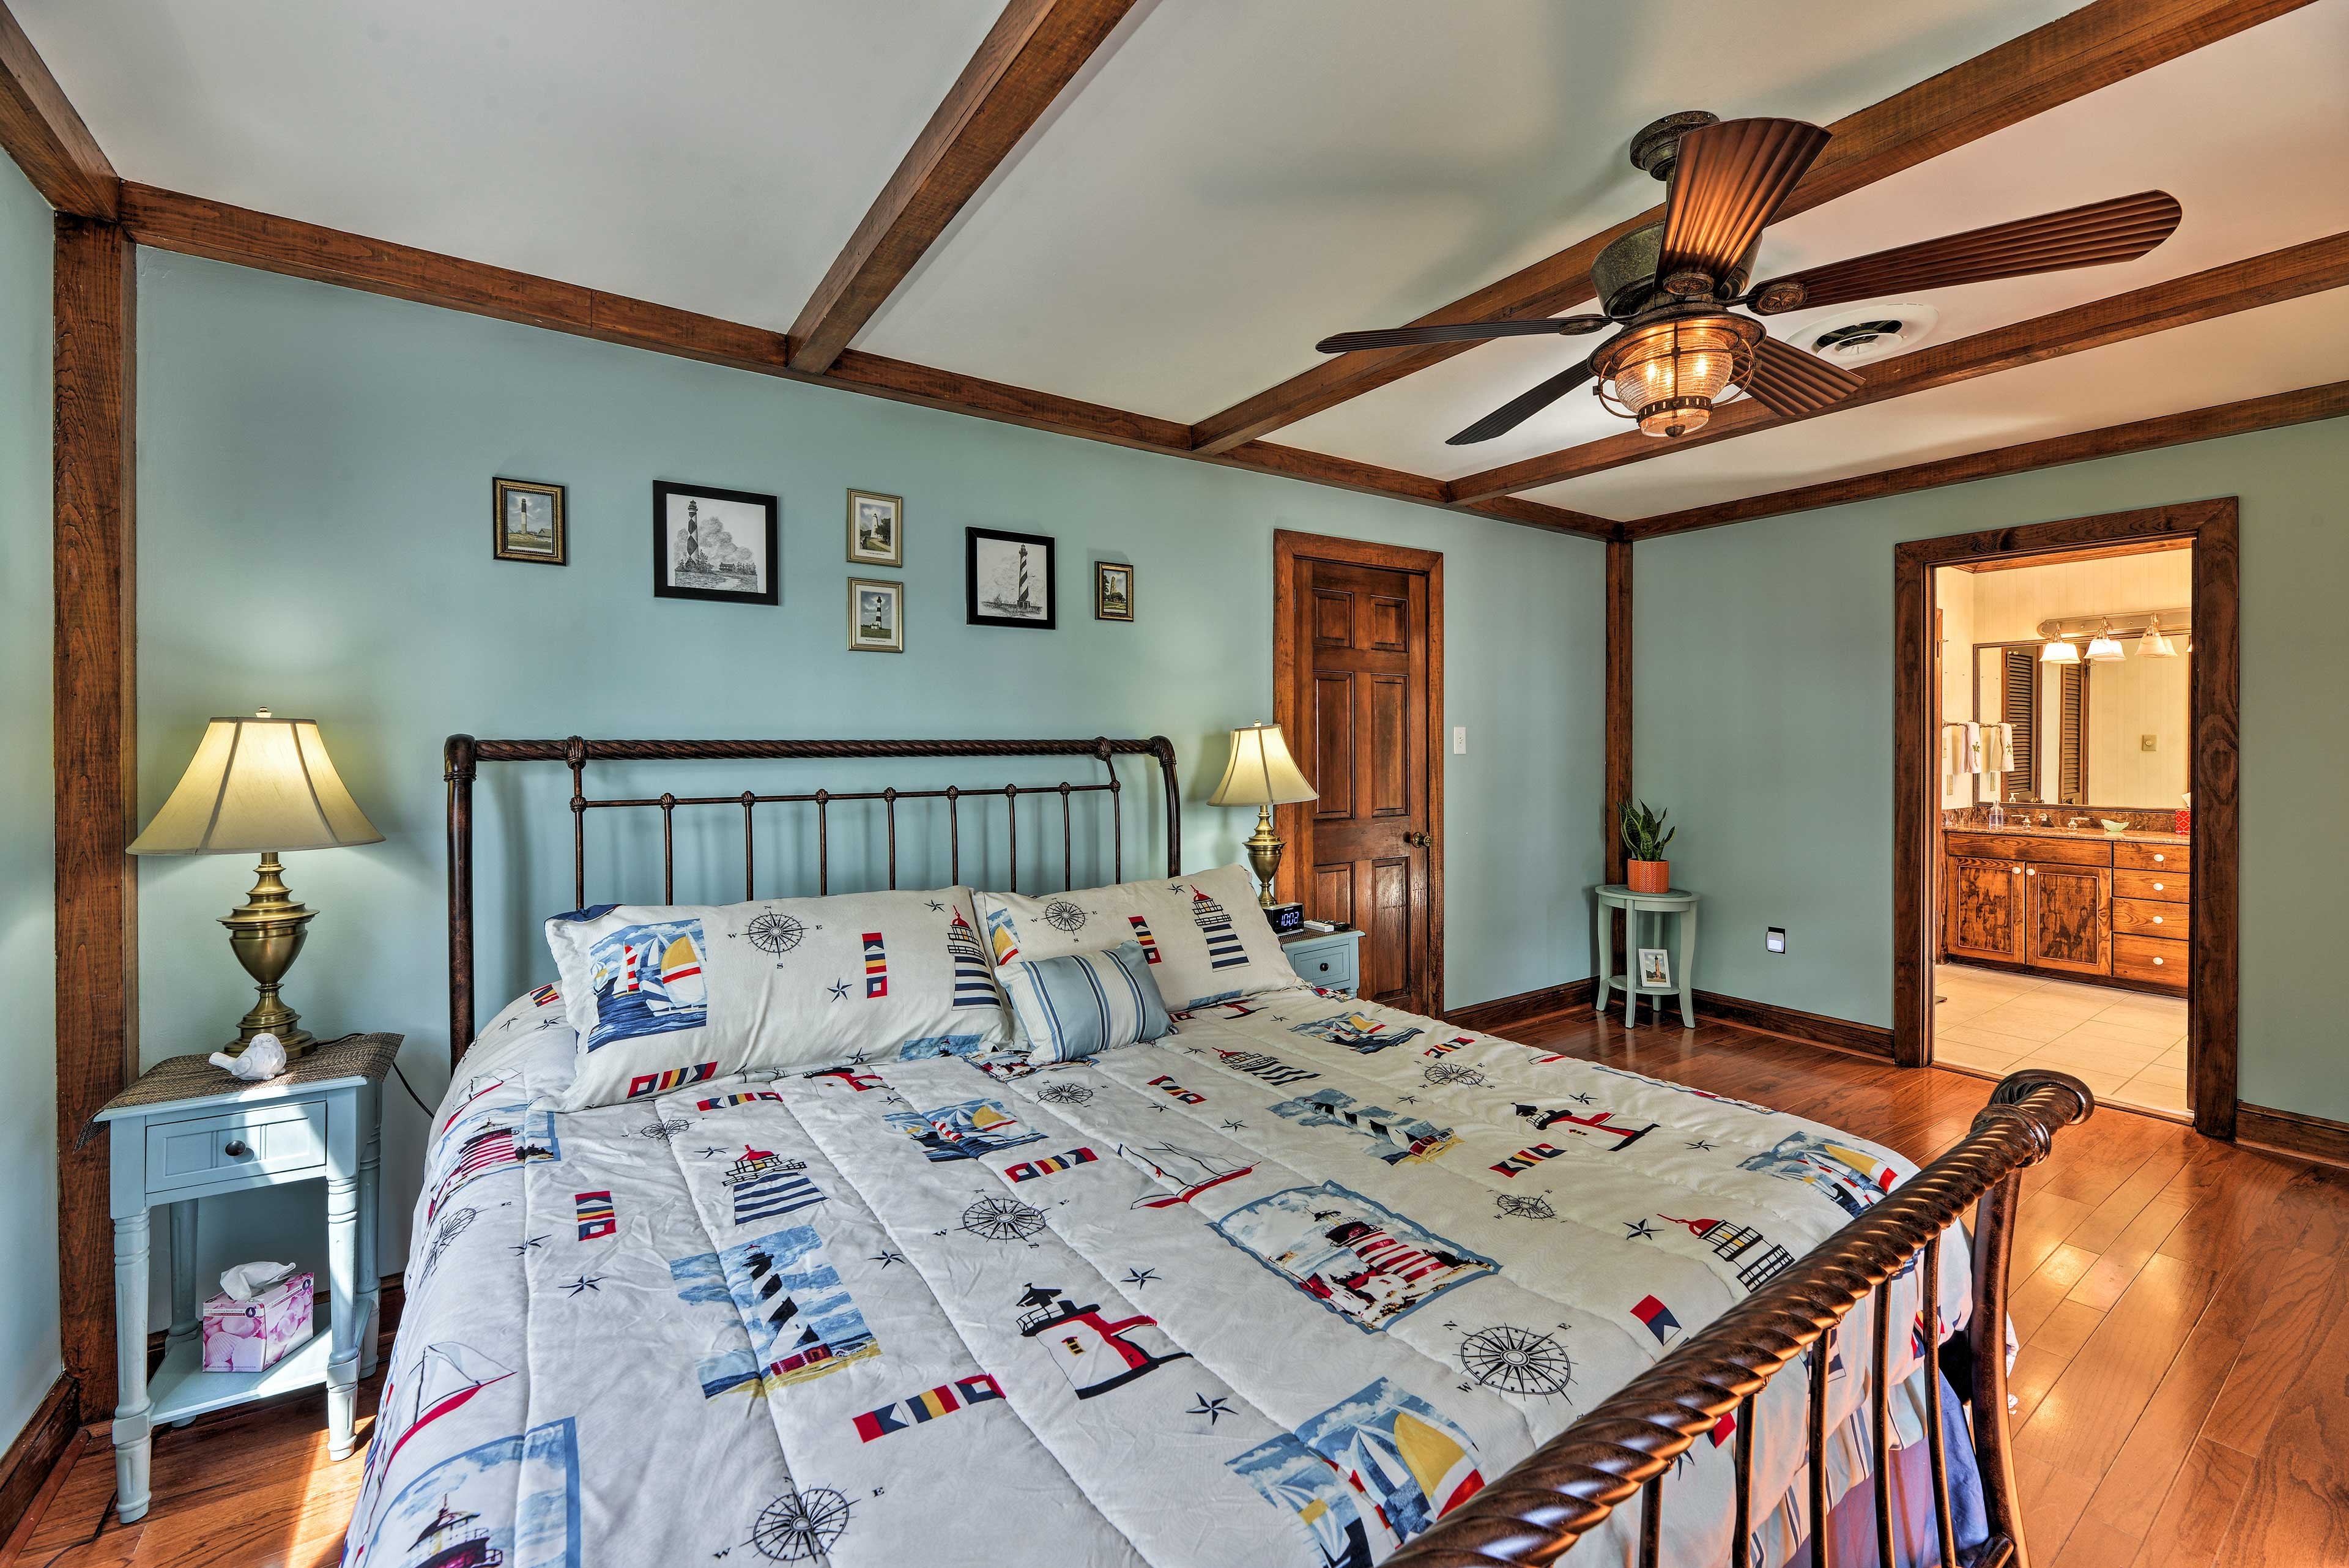 The second master bedroom also has a king bed.